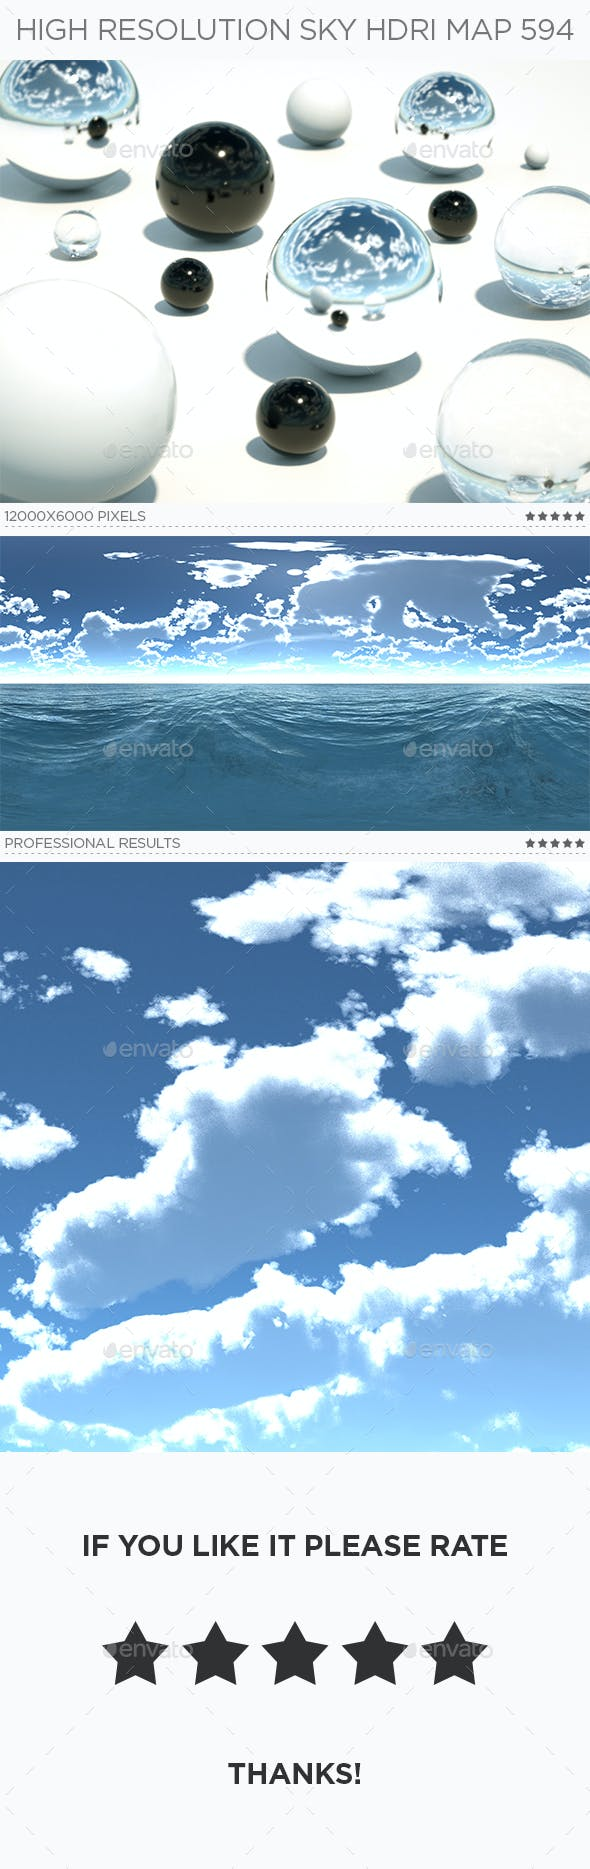 High Resolution Sky HDRi Map 594 - 3DOcean Item for Sale